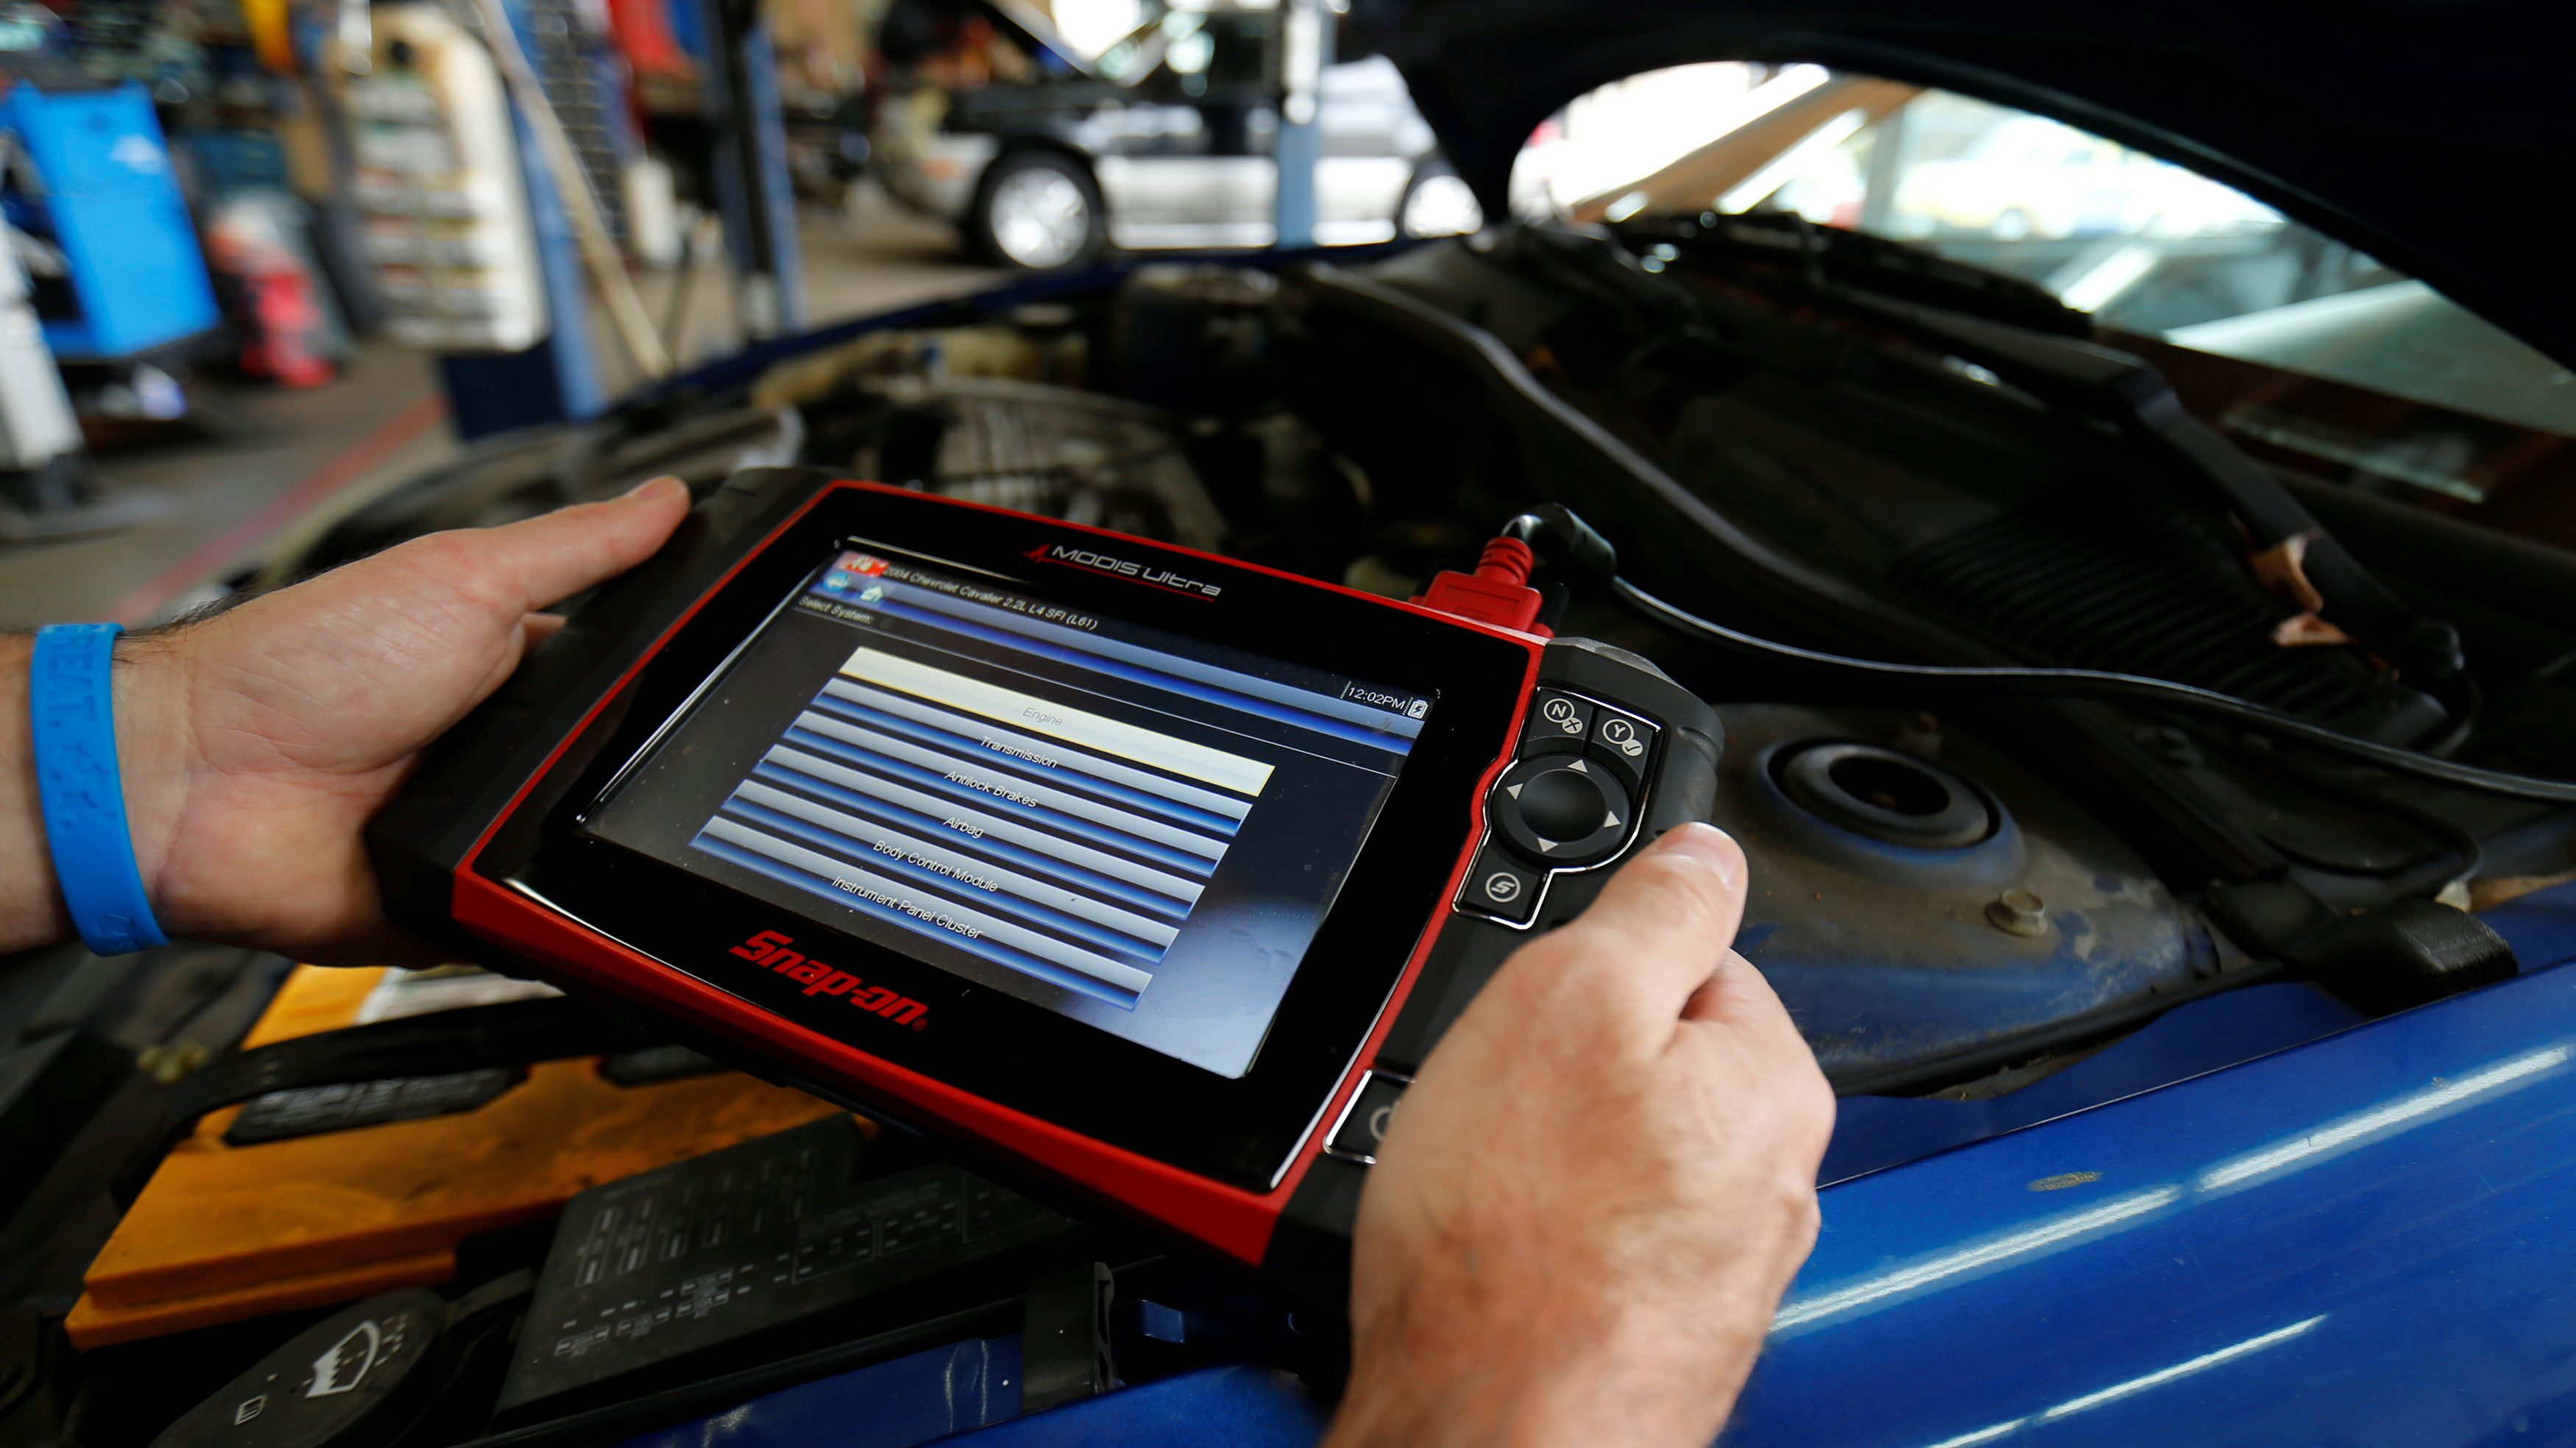 A mechanic holds an iPad displaying data from a car's computer while it sits in the background with its hood popped open.